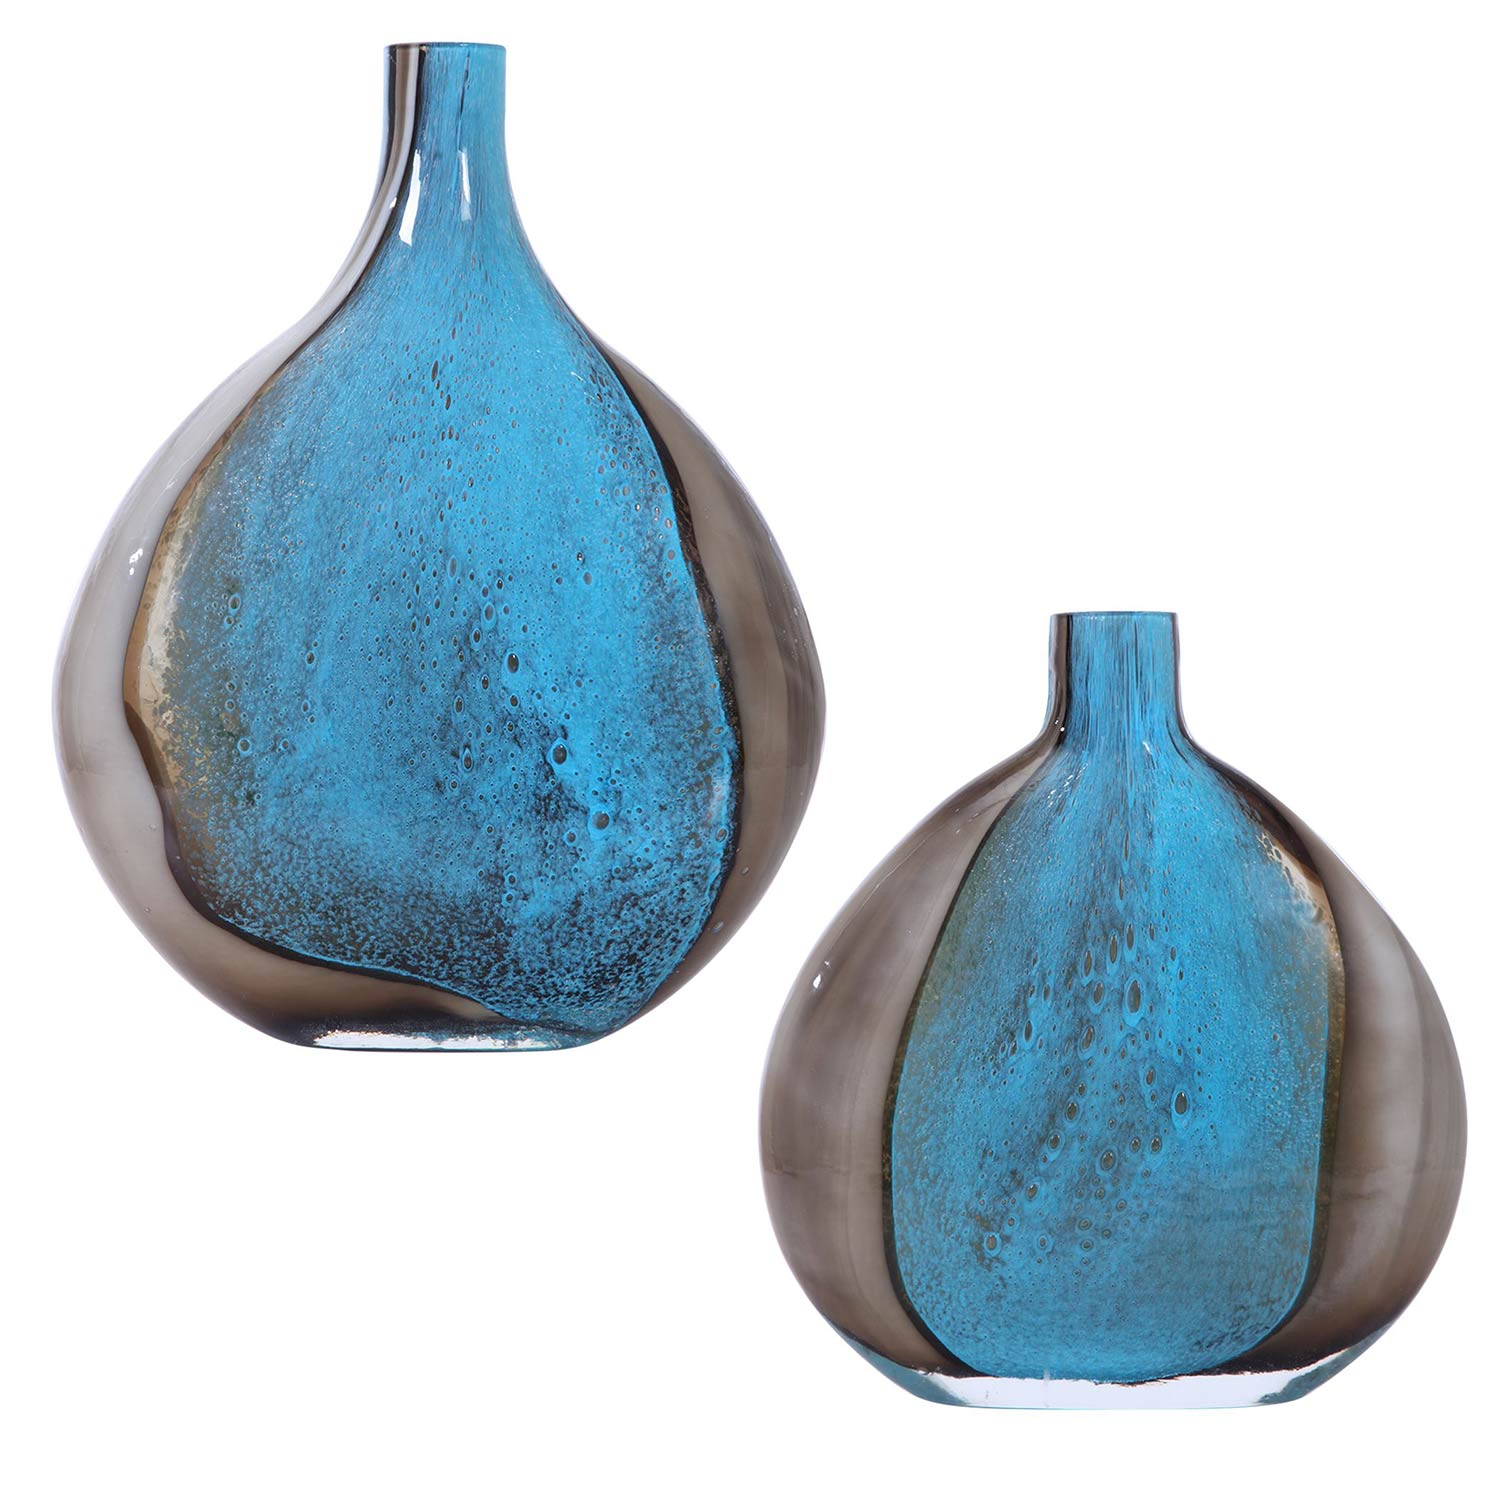 Uttermost Adrie Art Glass Vases - Set of 2